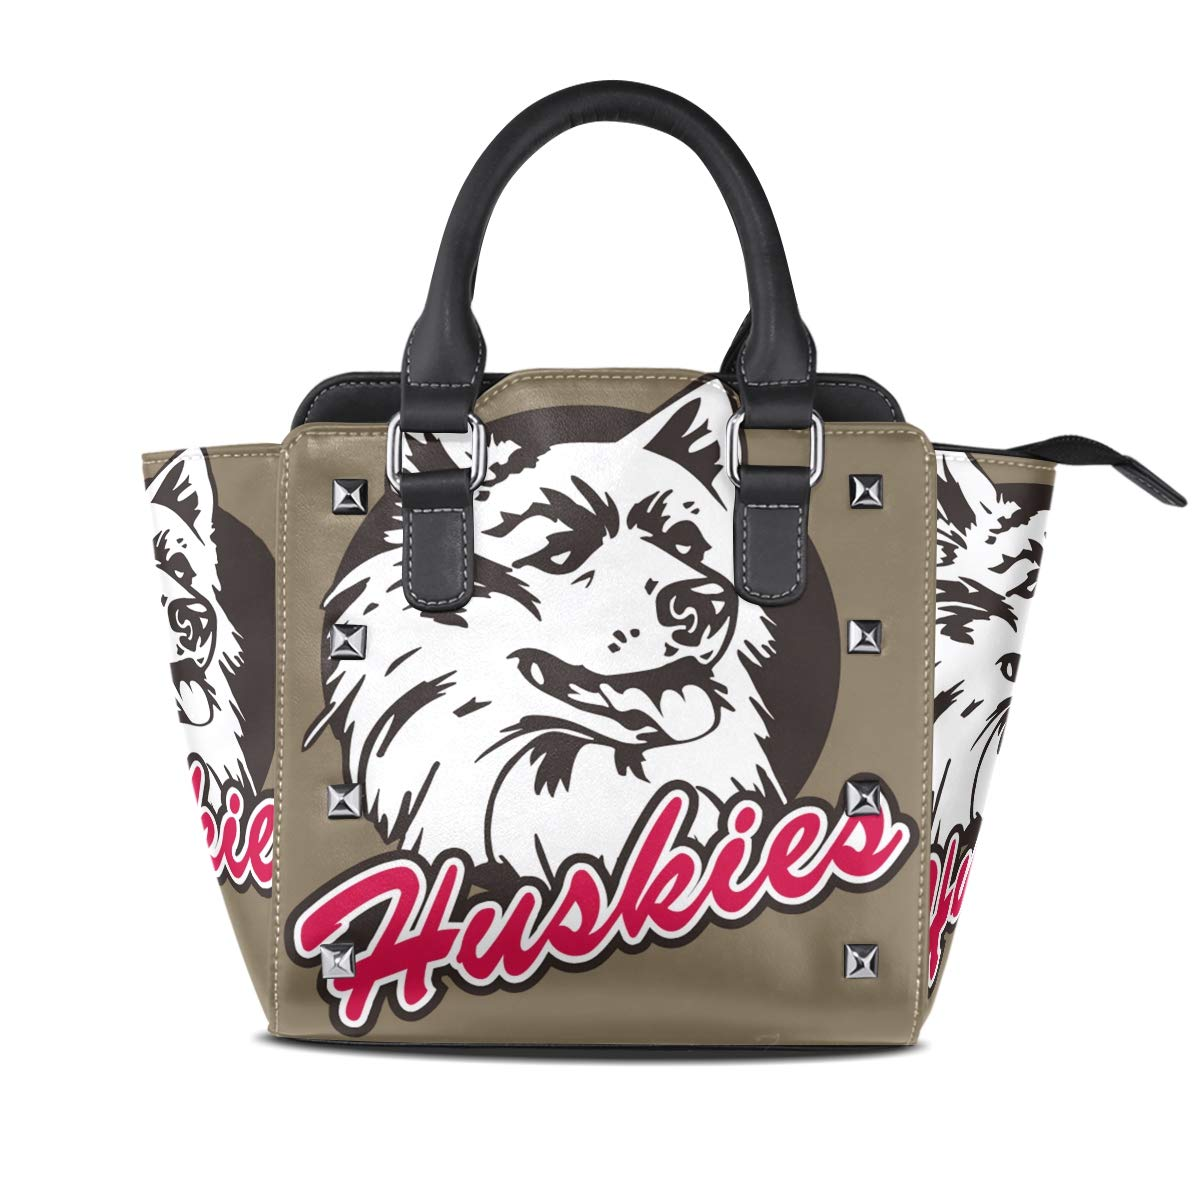 color5 Eight Running Horses Women Leather Studded Bags Shoulder Bags Tote Bag Handbags